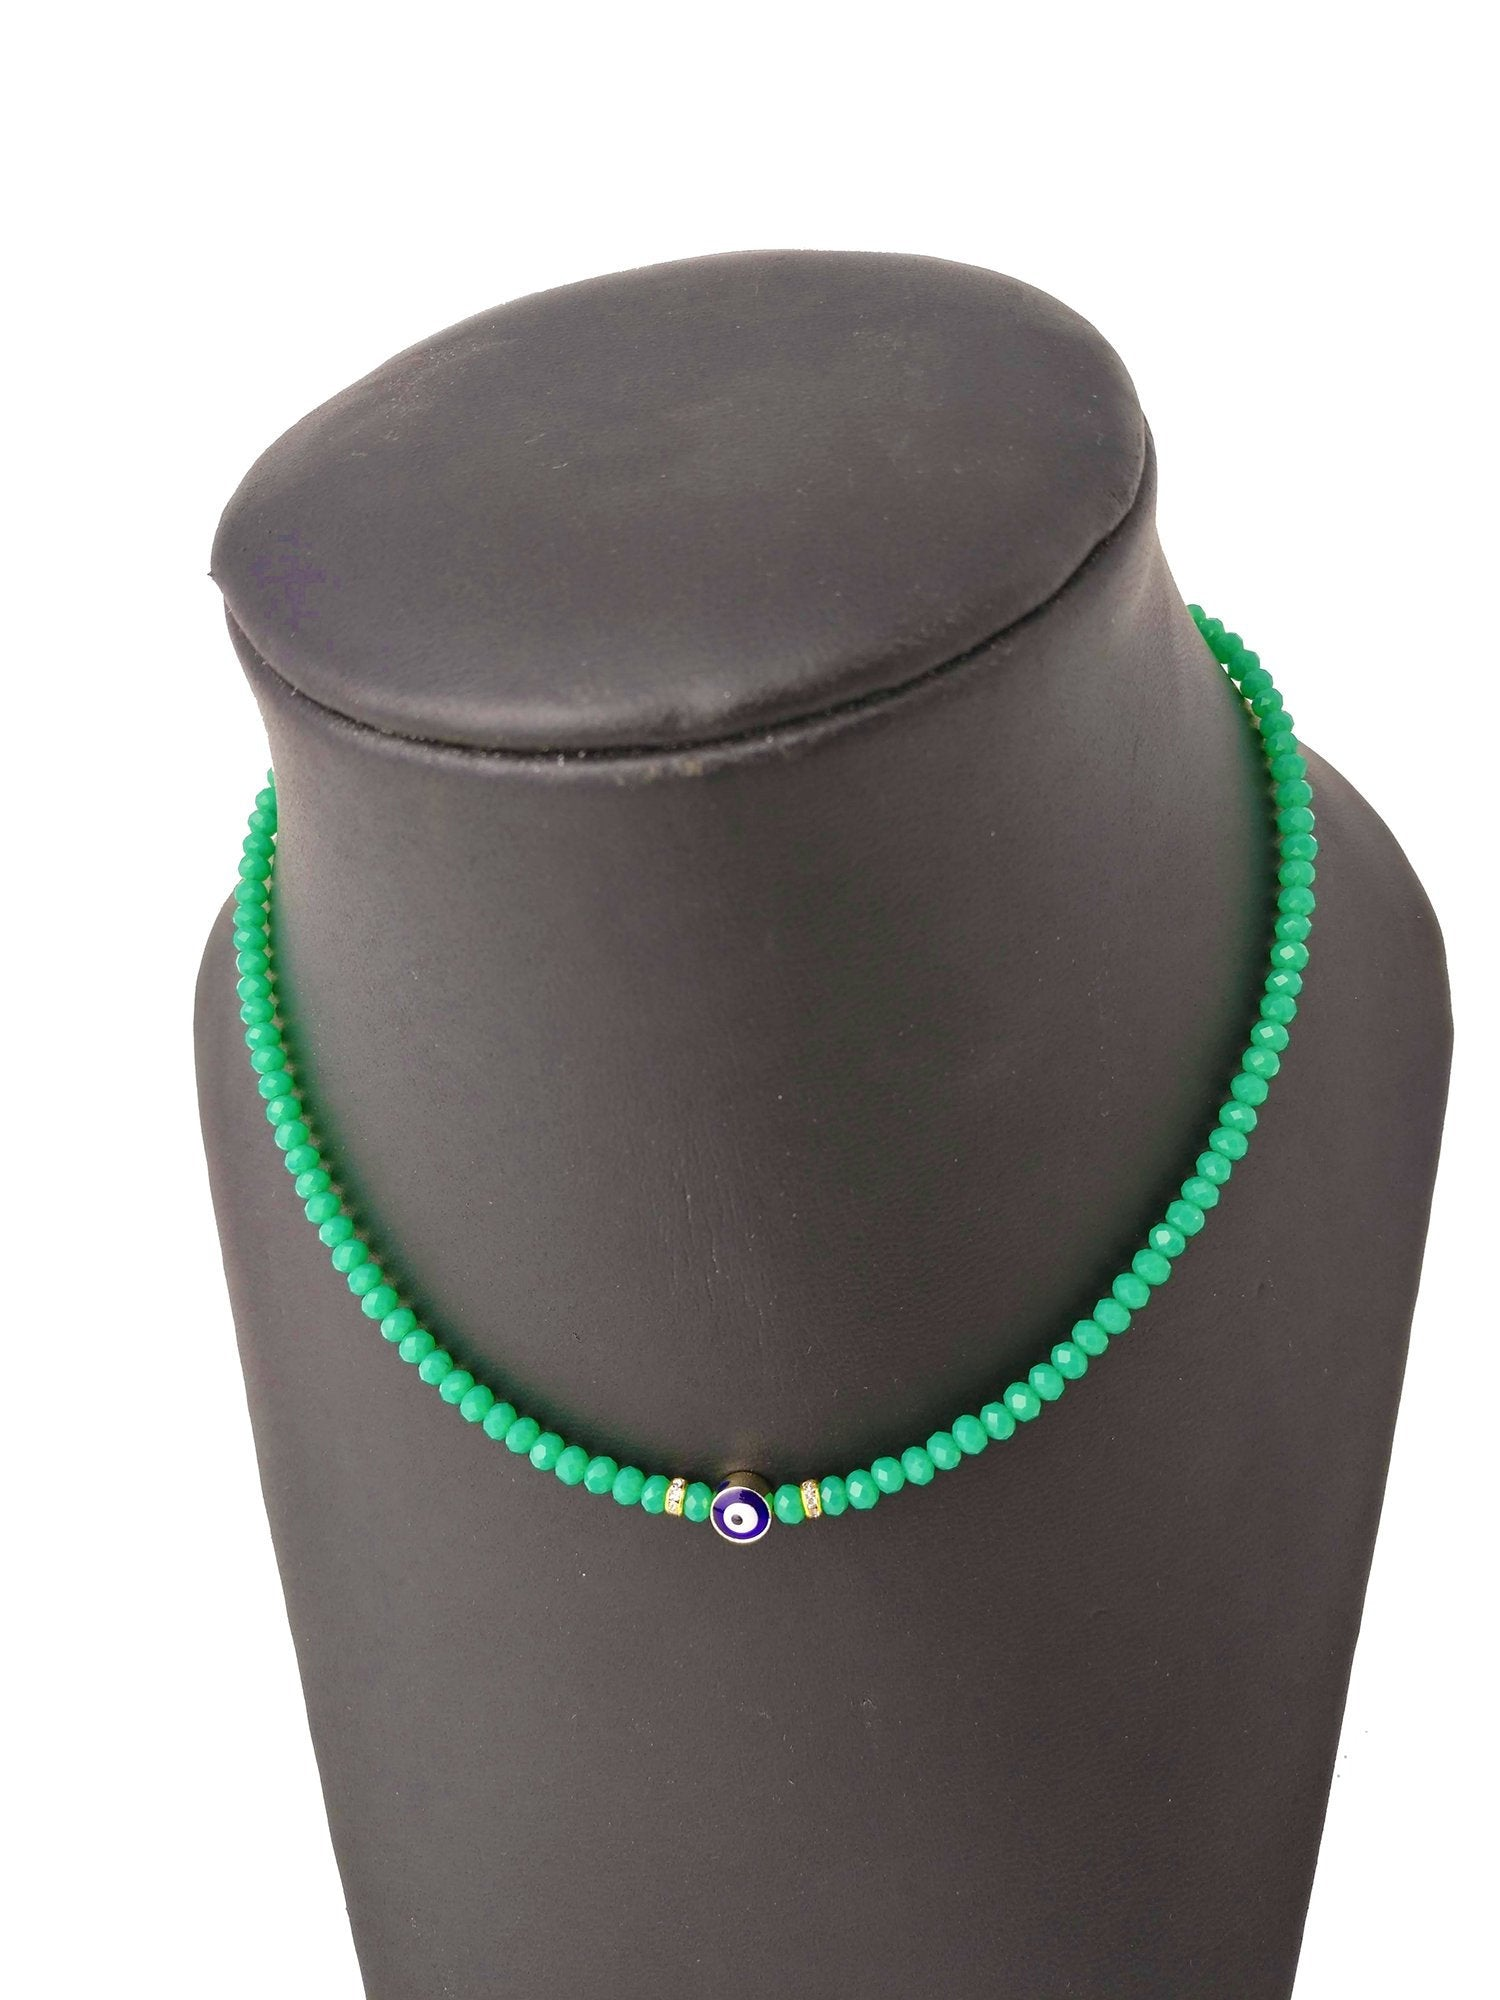 Beaded Evil Eye Necklace - Summer Green Turkish Nazar Necklace - Protection Necklace - Gift for Her - Turkish Nazar Jewelry